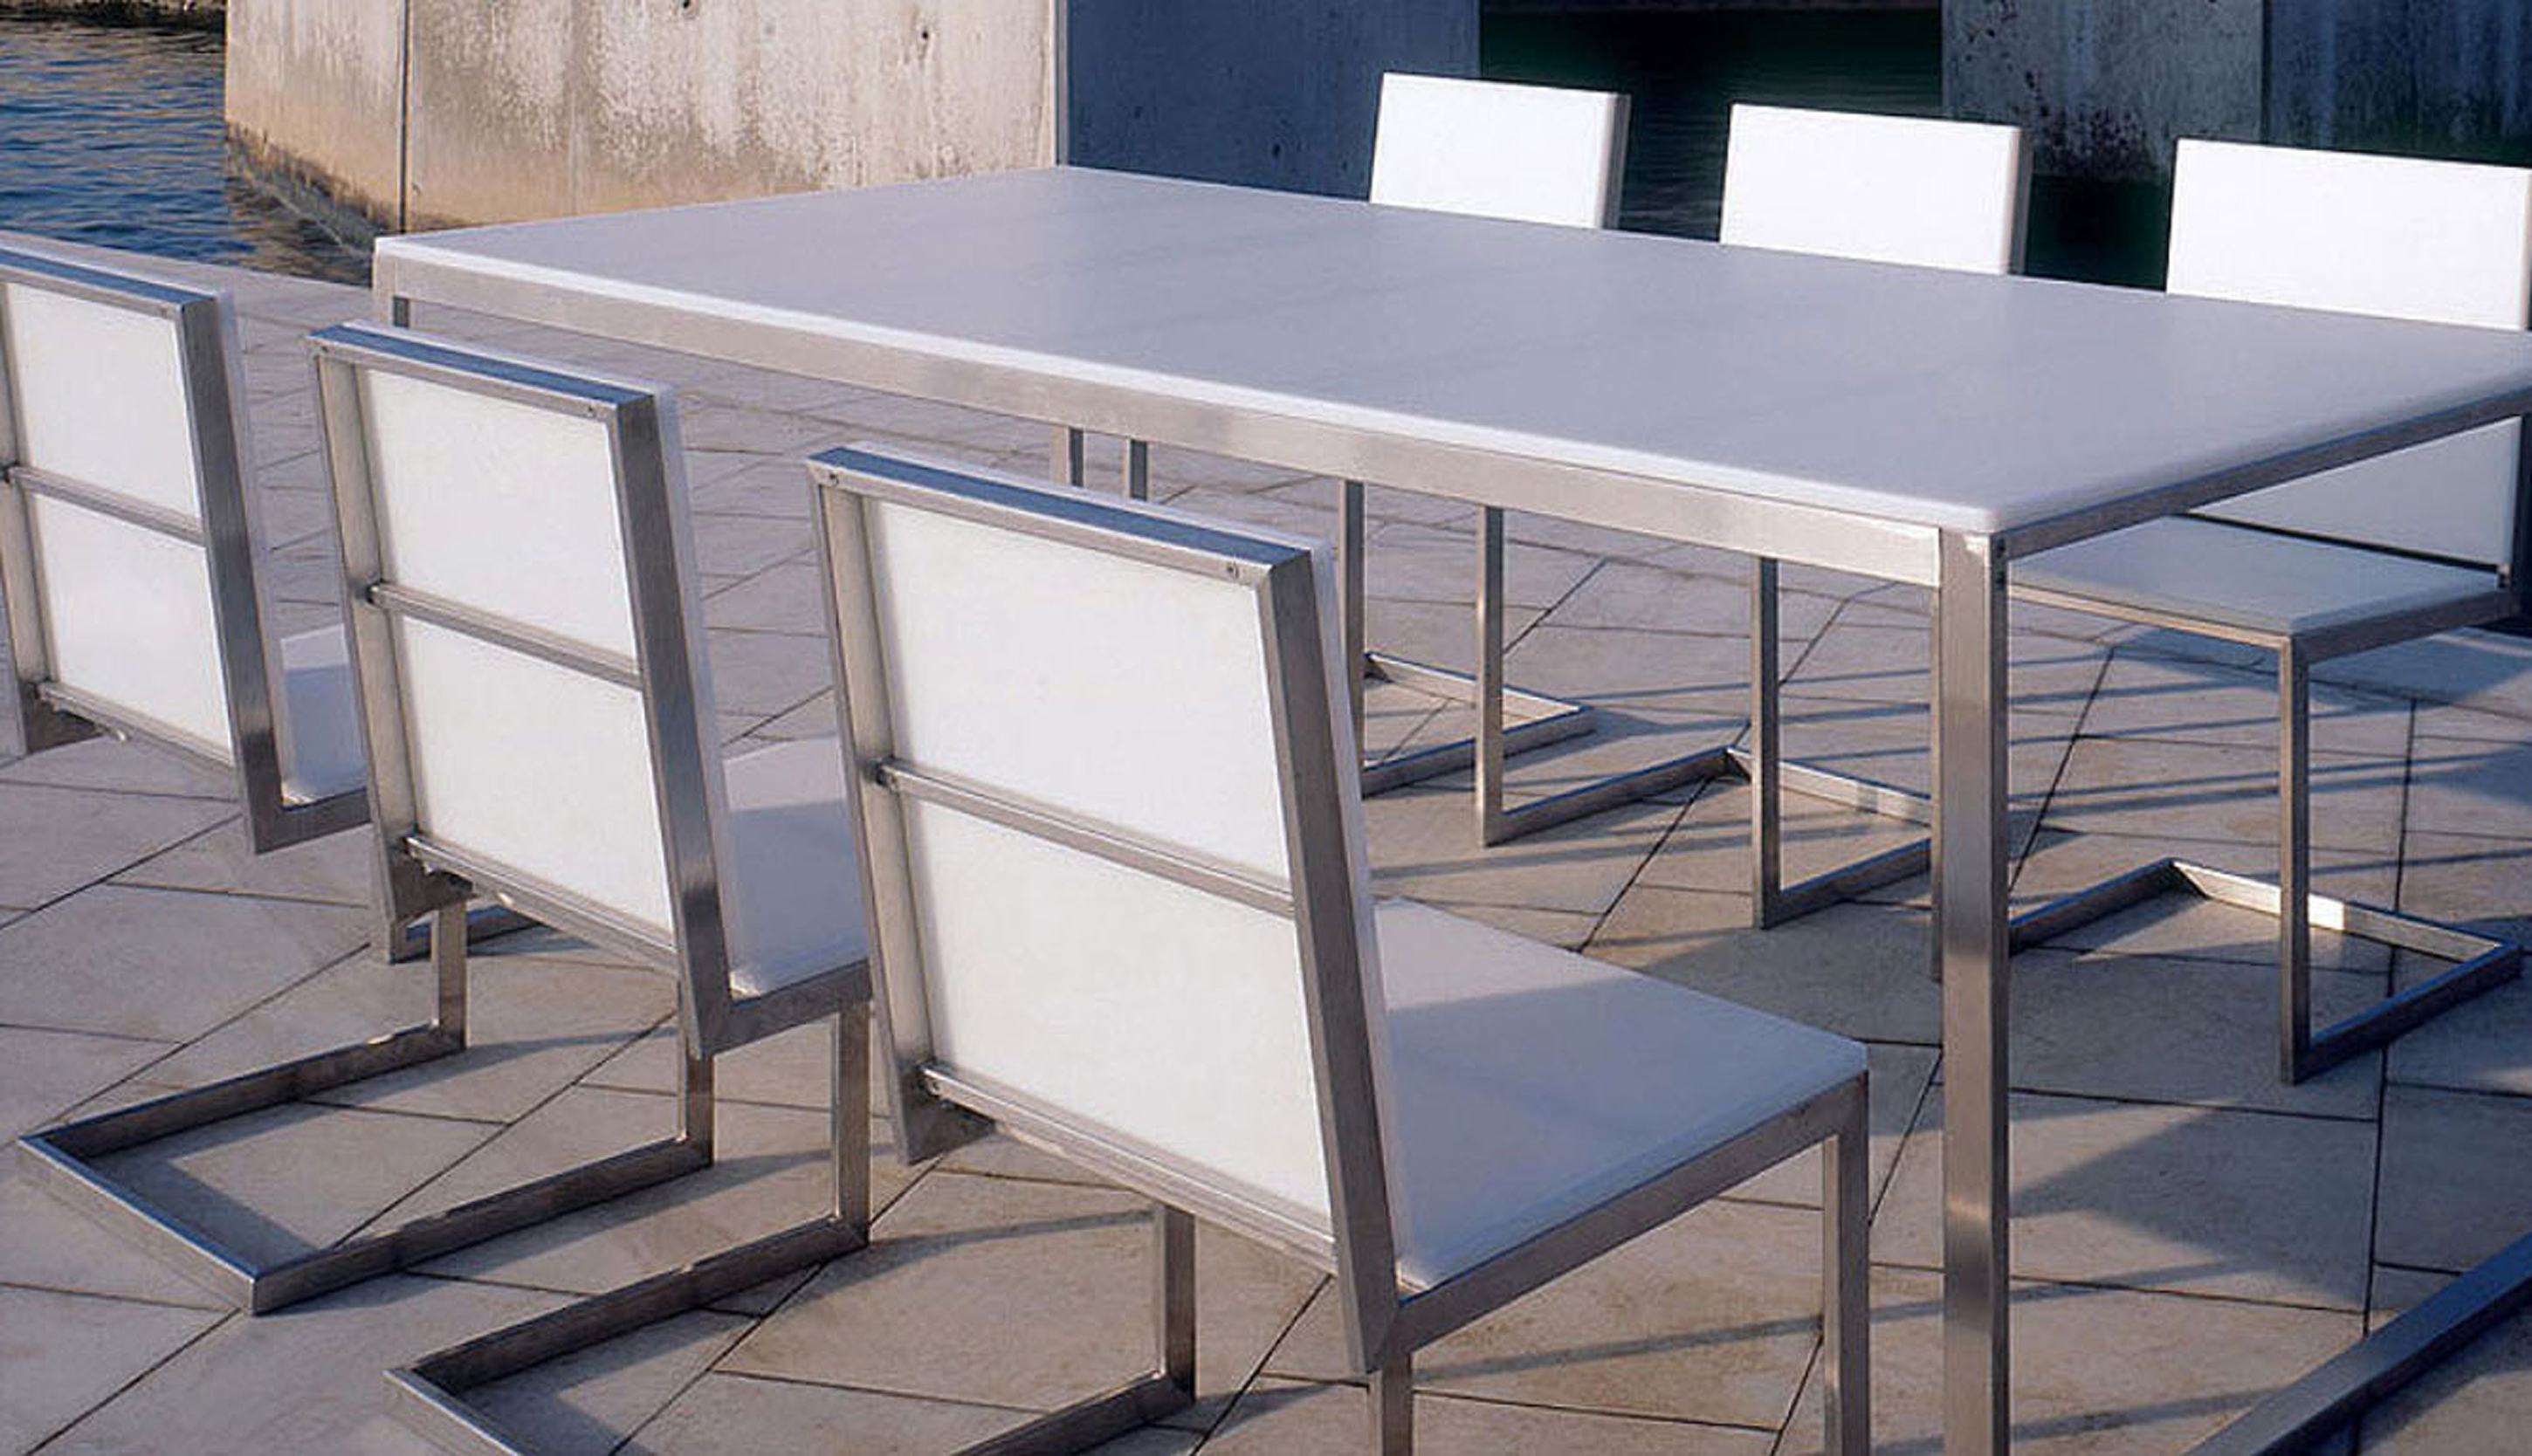 Lovely Modern Outdoor Dining Design Idea With White Dining Table With Silver Base And White Silver Chairs Nice Modern Outdoor Dining Design Ideas (Image 5 of 20)